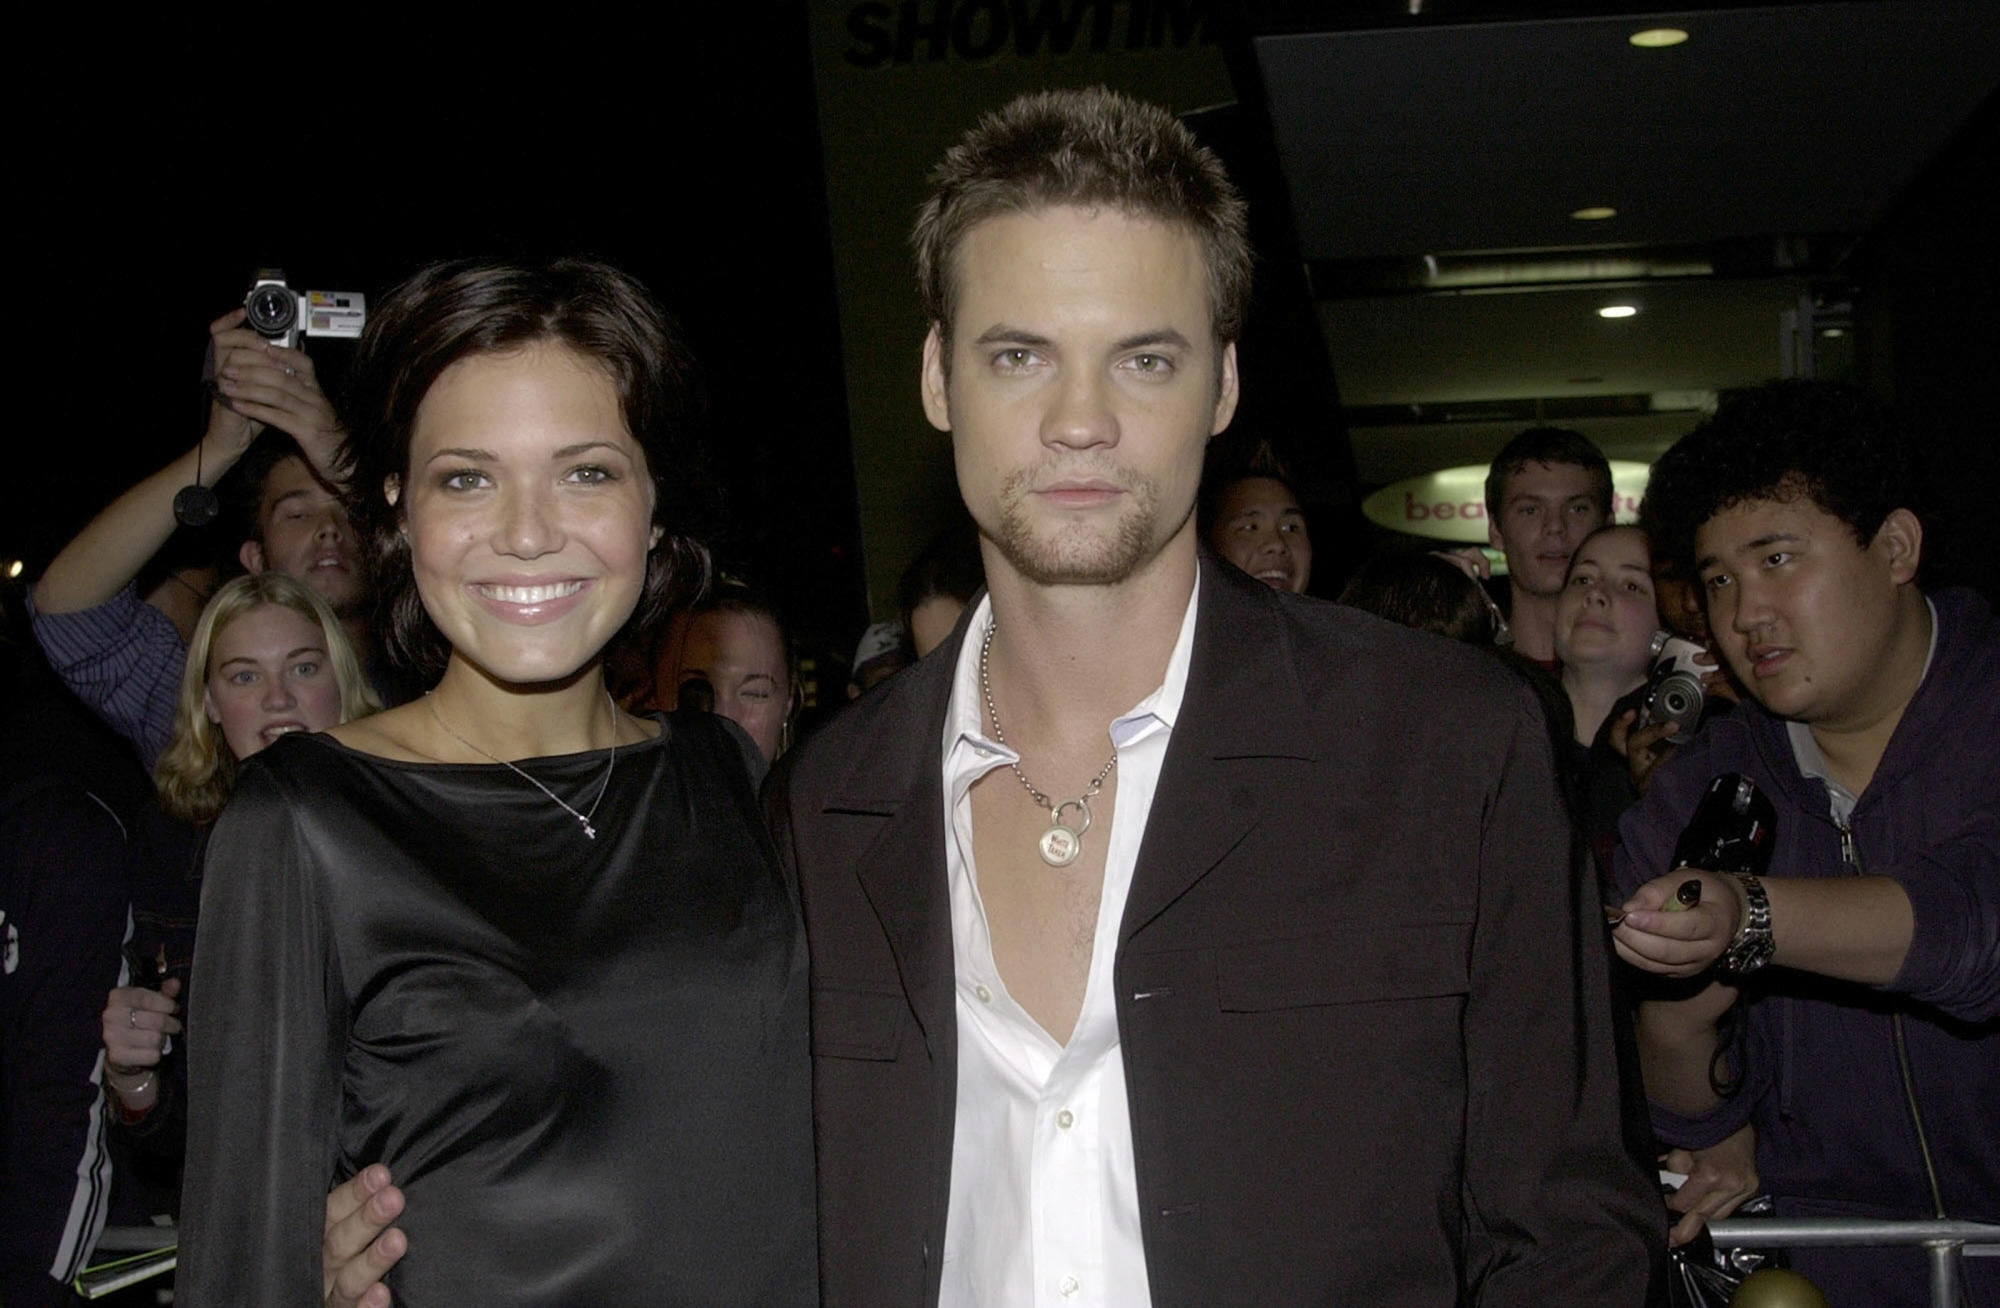 Shane West says he and Mandy Moore crushed on each other filming 'A Walk to Remember' - Yahoo Entertainment